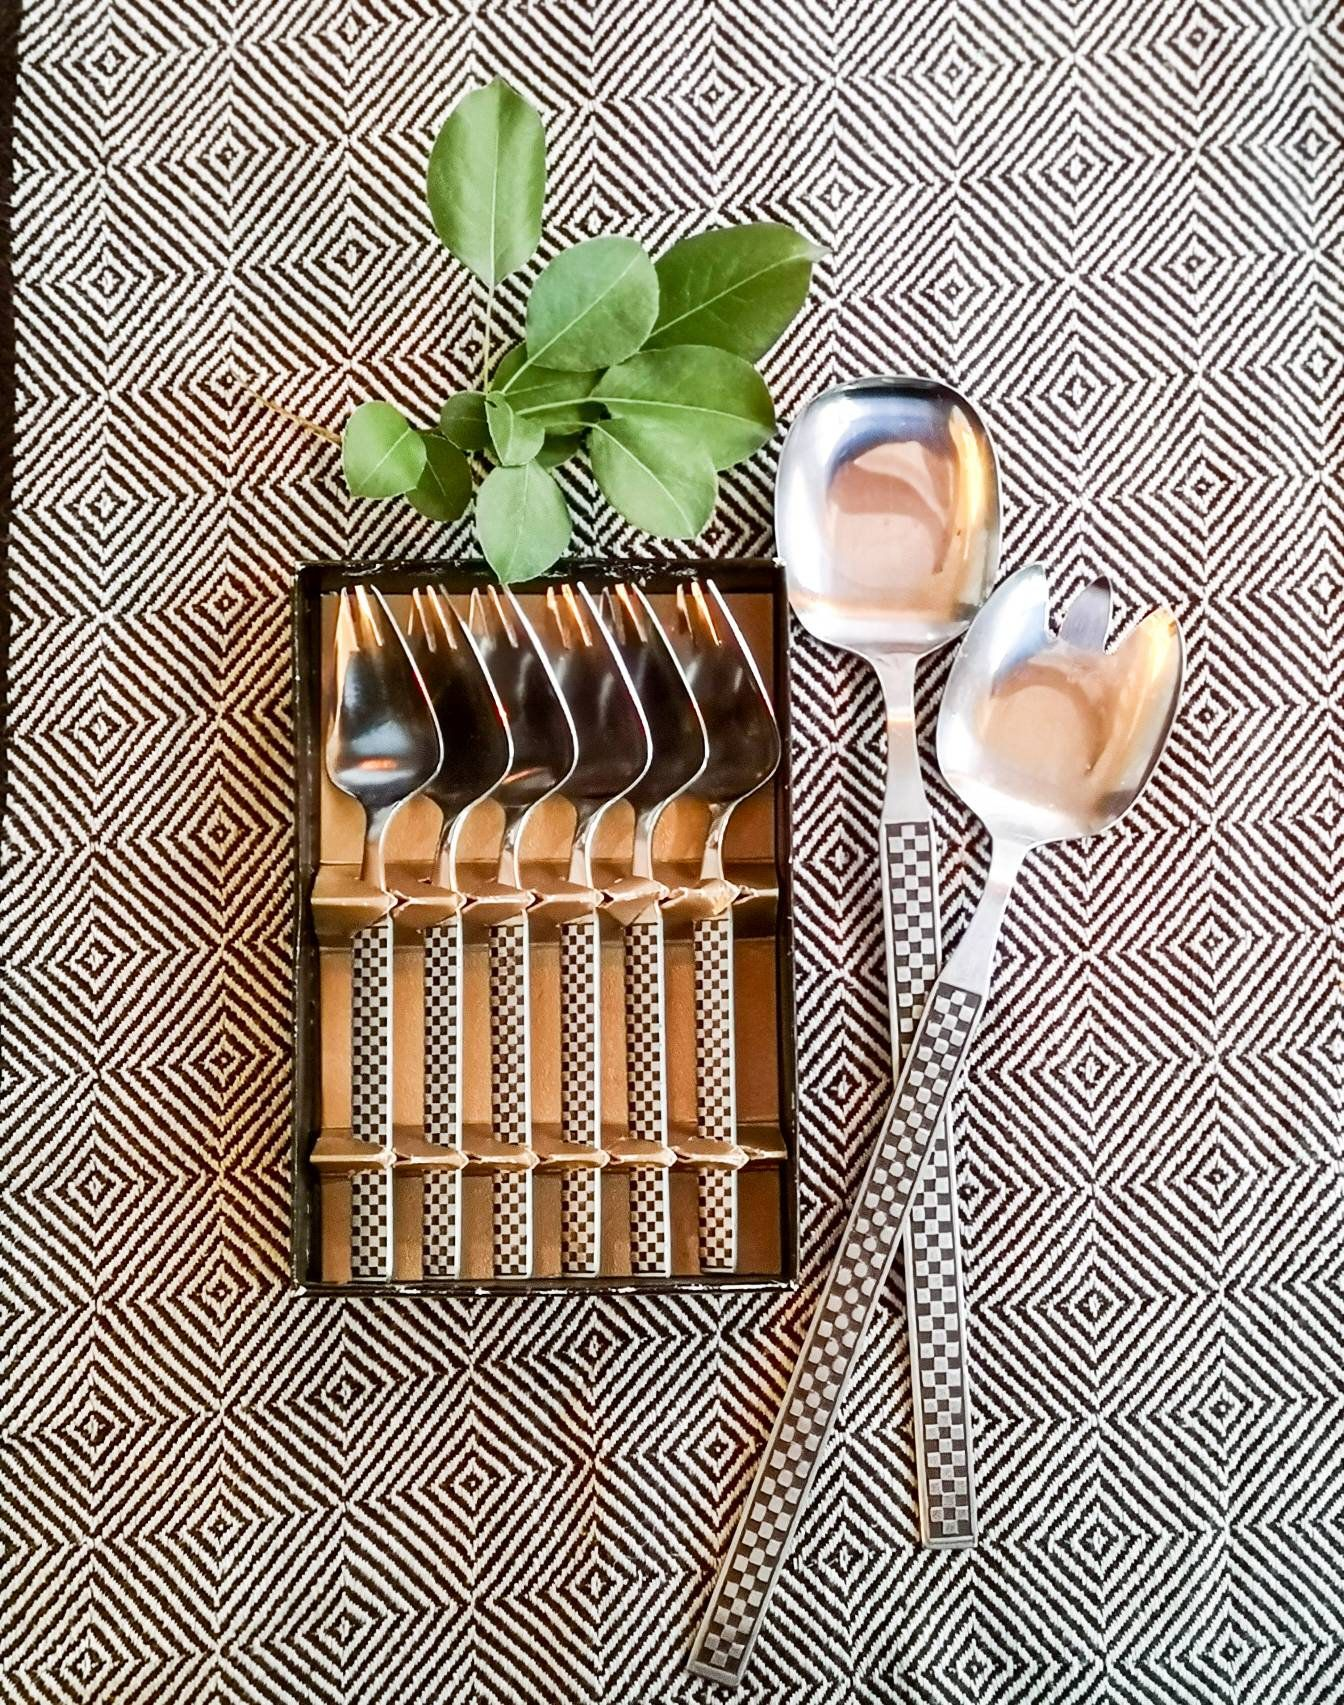 Jual Murah Vintage Salad Servers And Serving Forks Mid Century Style Sepatu Bayi Laki Tamagoo David Series Baby Shoes Prewalker  9 12 Bulan Abu Muda Horn Server 1 By Oddandreloved